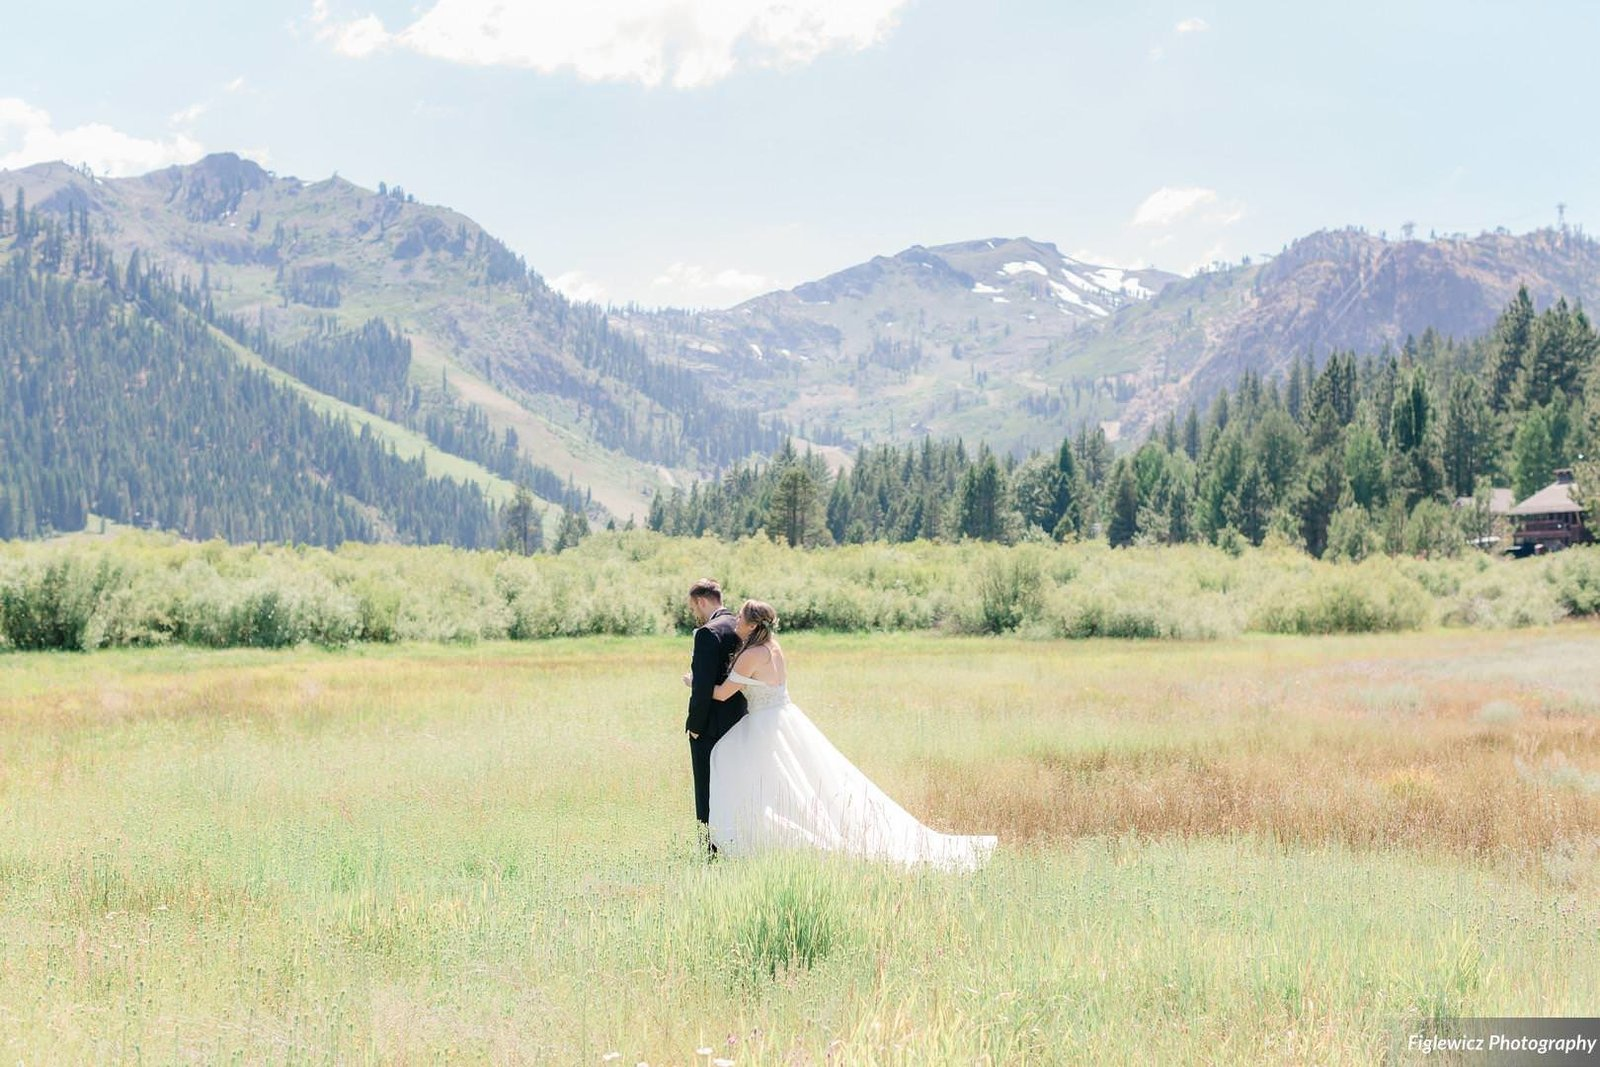 Garden_Tinsley_FiglewiczPhotography_LakeTahoeWeddingSquawValleyCreekTaylorBrendan00017_big